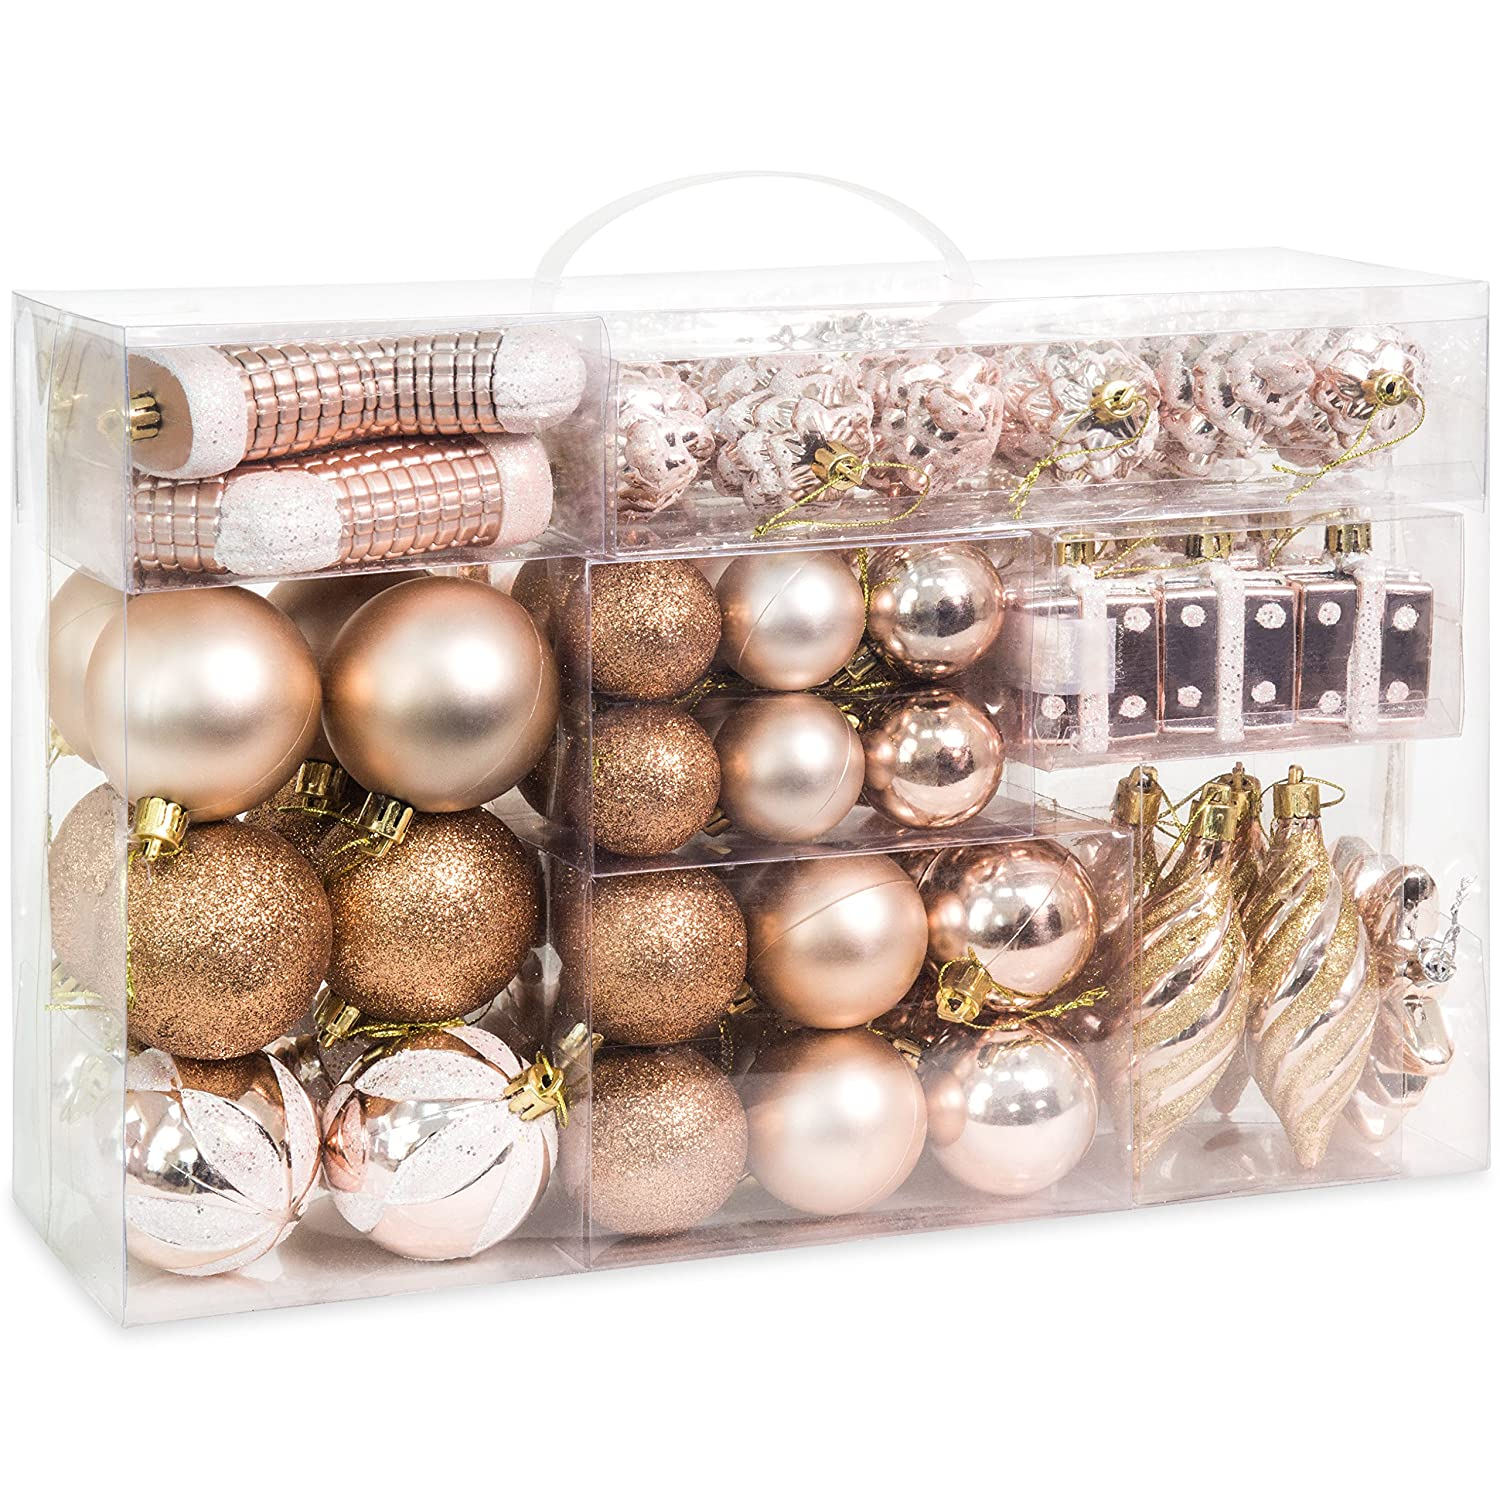 Best Choice Products Set Of 72 Shatterproof Handcrafted Assorted Hanging Christmas Ornaments With Embossed Glitter Design Rose Gold